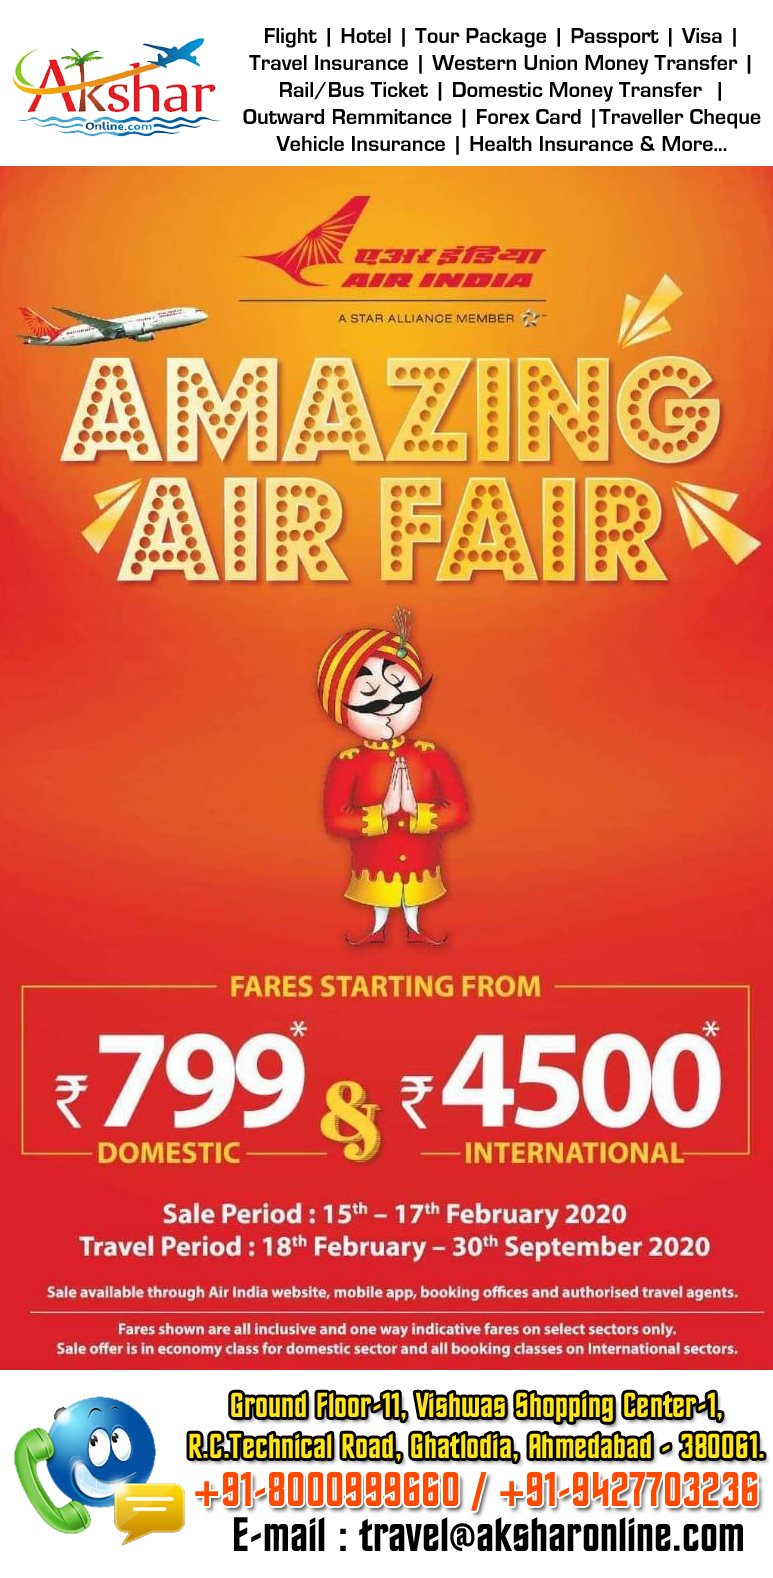 AIrIndia Amazing Airfare Sale...domestic and international, sale, special fare...akshar travel services, aksharonline.com, 9427703236, 8000999660